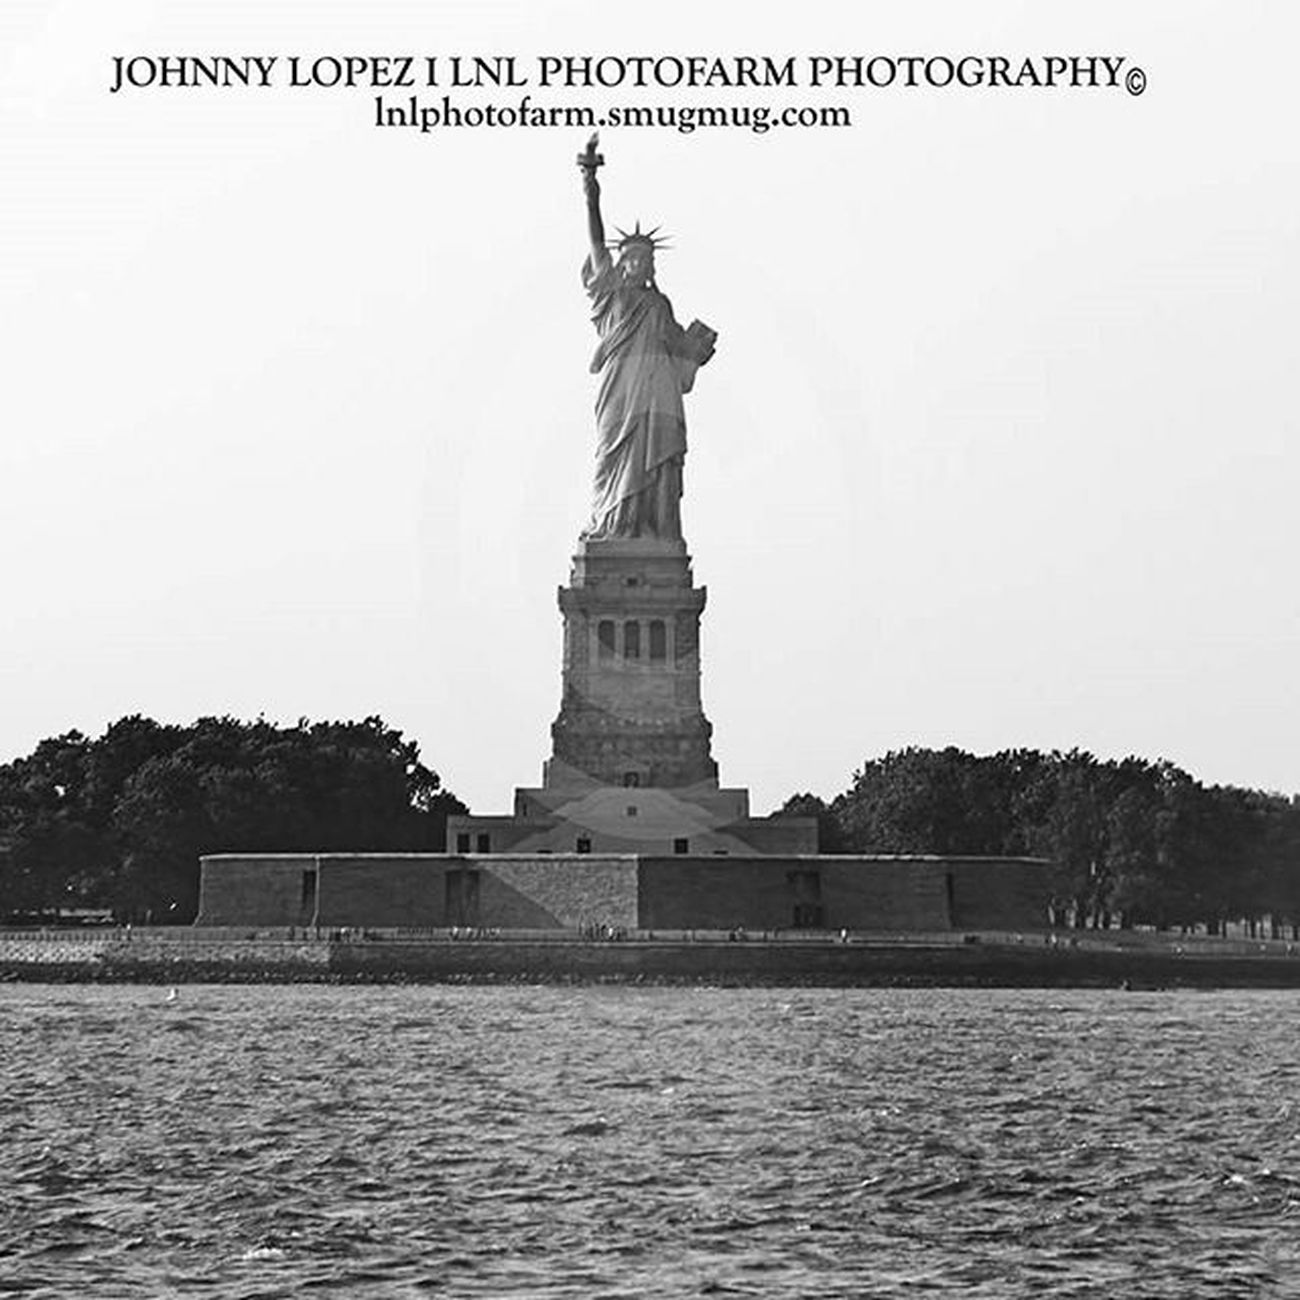 The Statue of Liberty TheStatueofLiberty Newyork New Johnnylopezthephotographer Lnlphotofarmphotography Landofthefree Street Streetphotography Streetstyle Photographer Photograph Kardashiankollection Kutv Cachevalleyphotographer USA Goprooftheday Awesome Black Like4like Likeforlike Likes Likeback Likeme HASHTAG